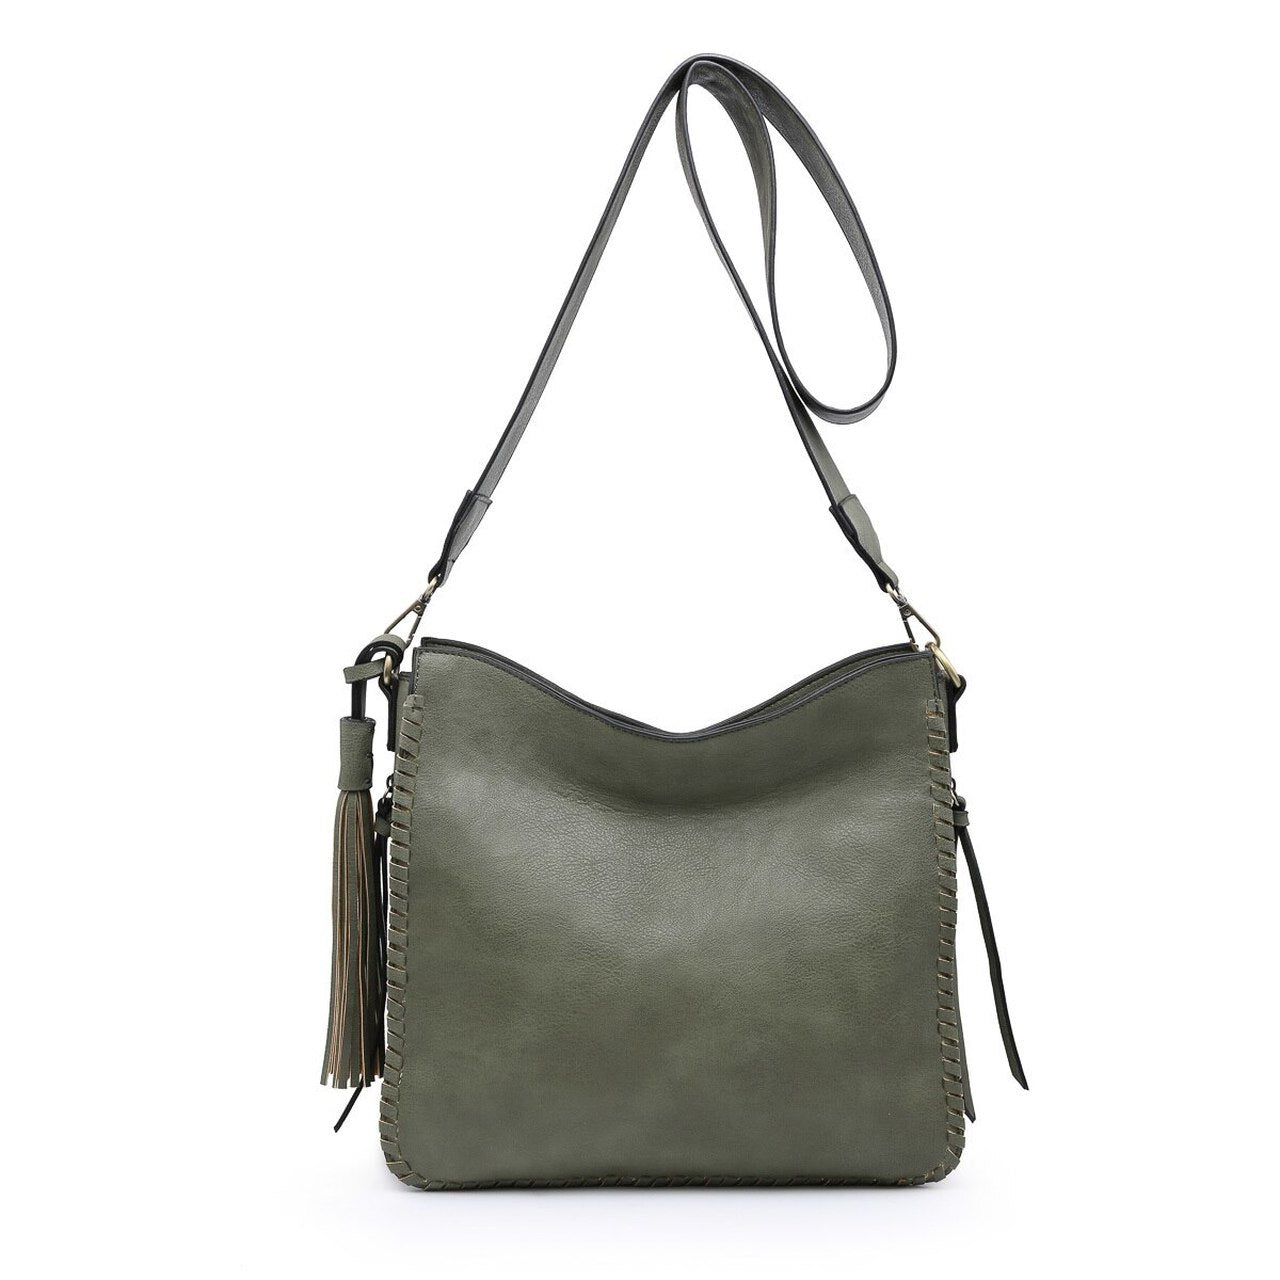 Monogrammable Whipstitch Conceal/Carry Crossbody in Olive